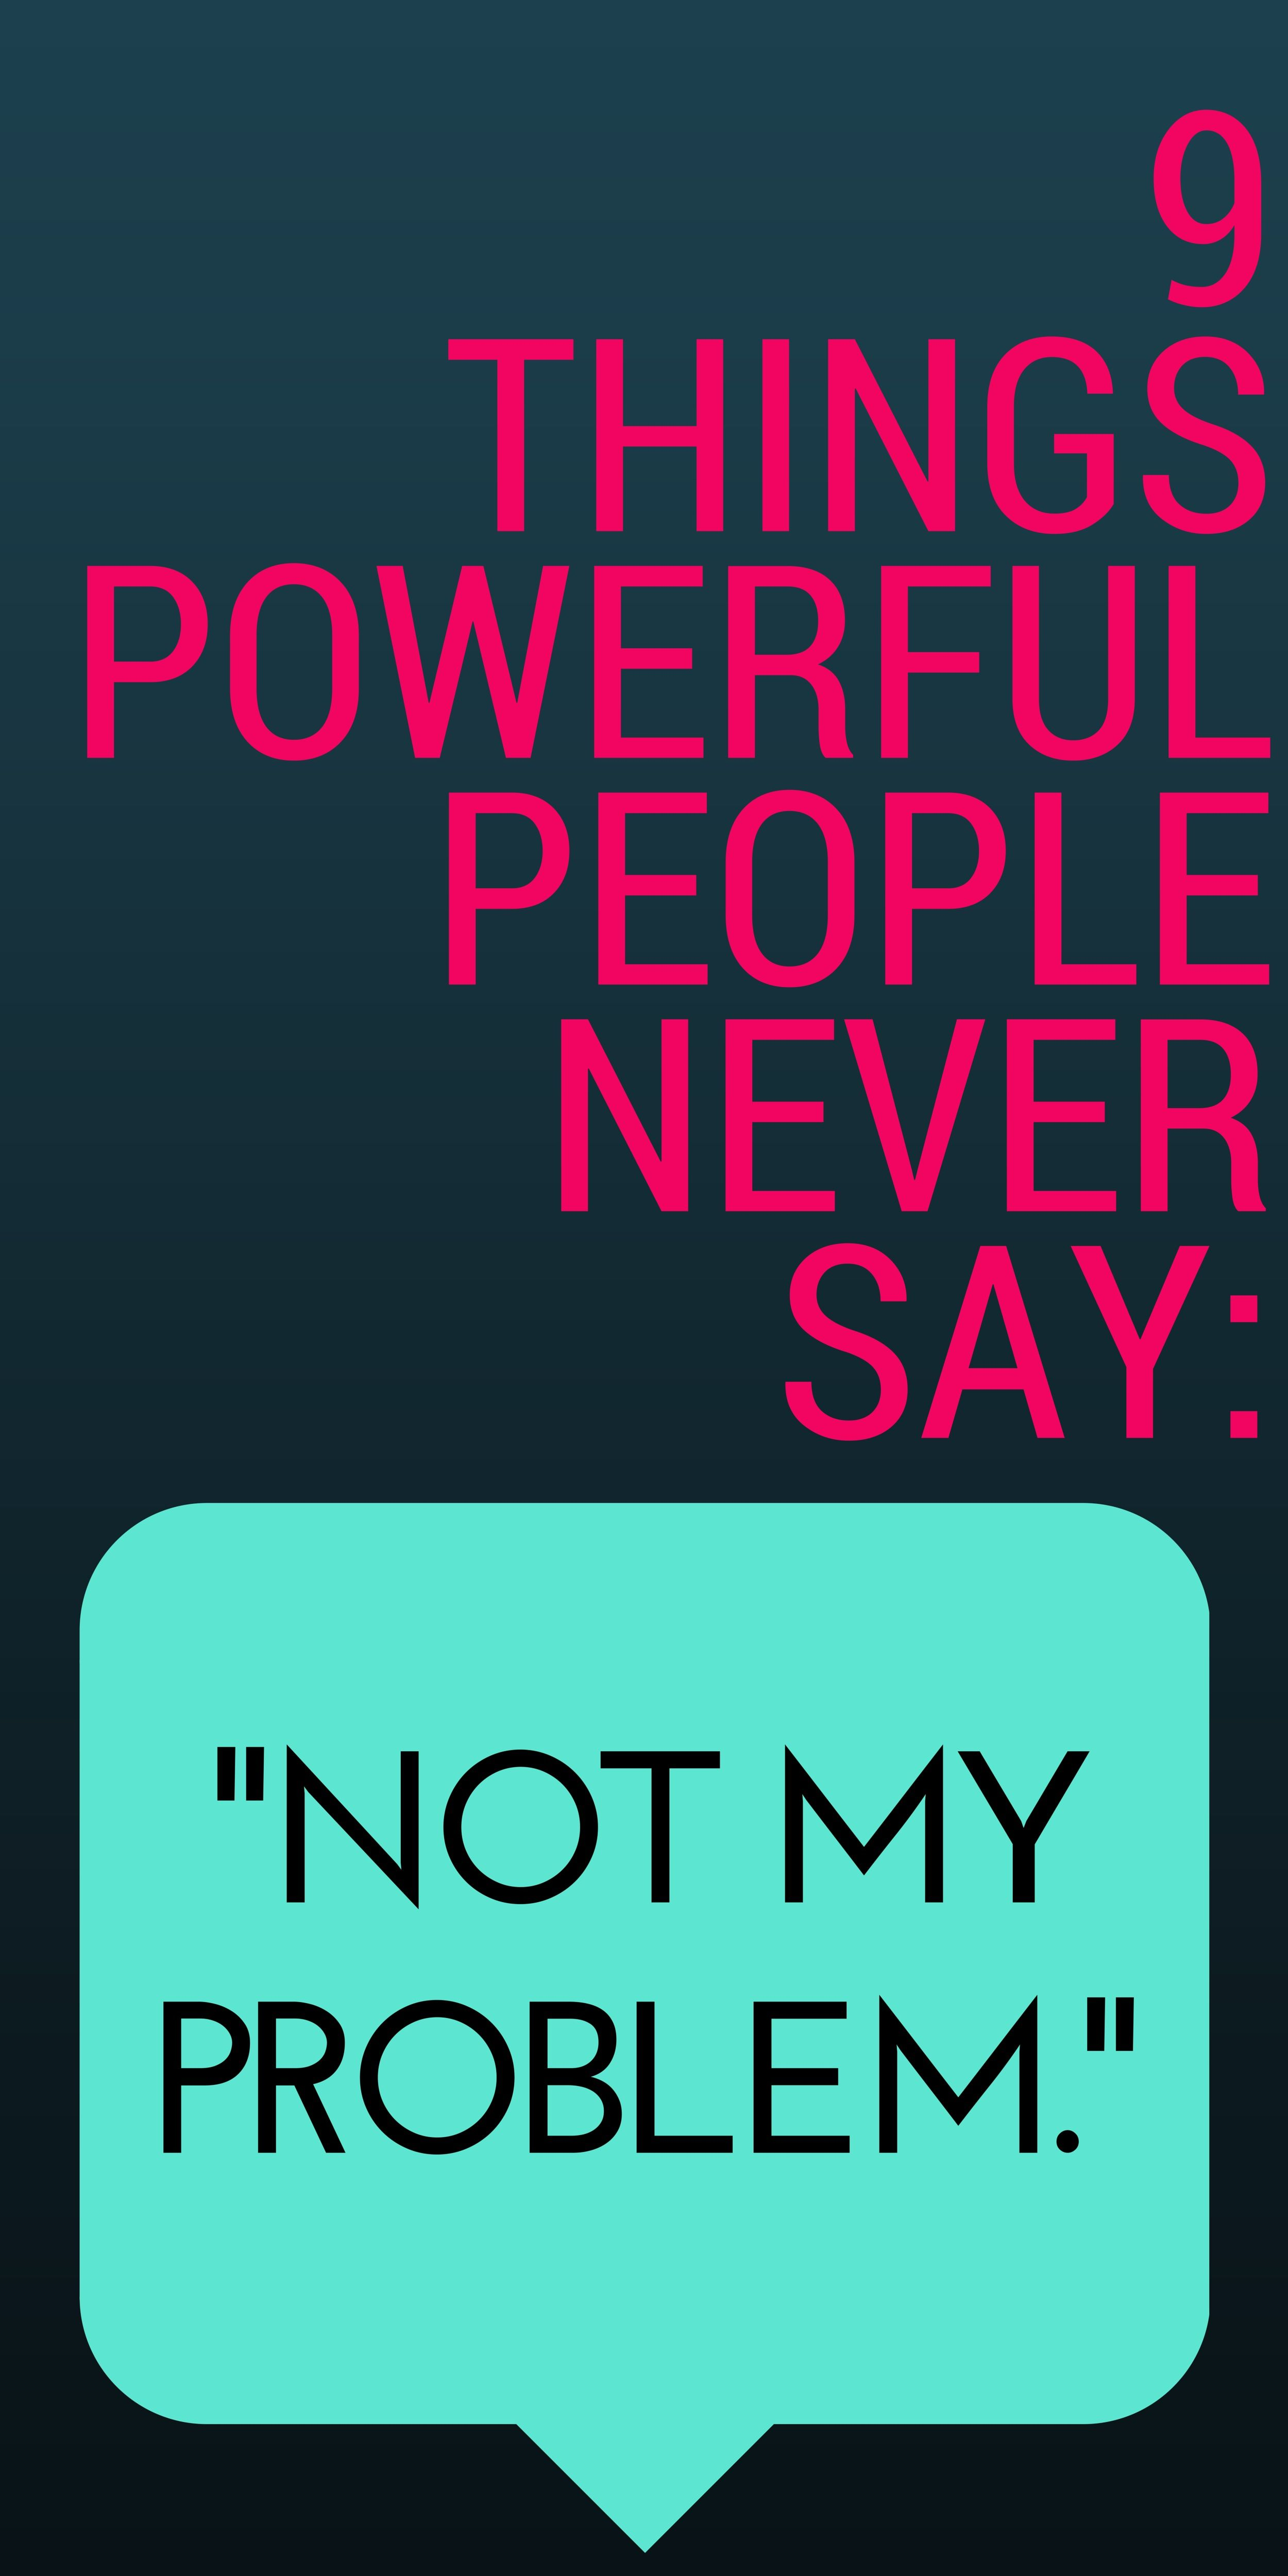 Motivational Quotes For Individuals: 9 Things Powerful People Never Say